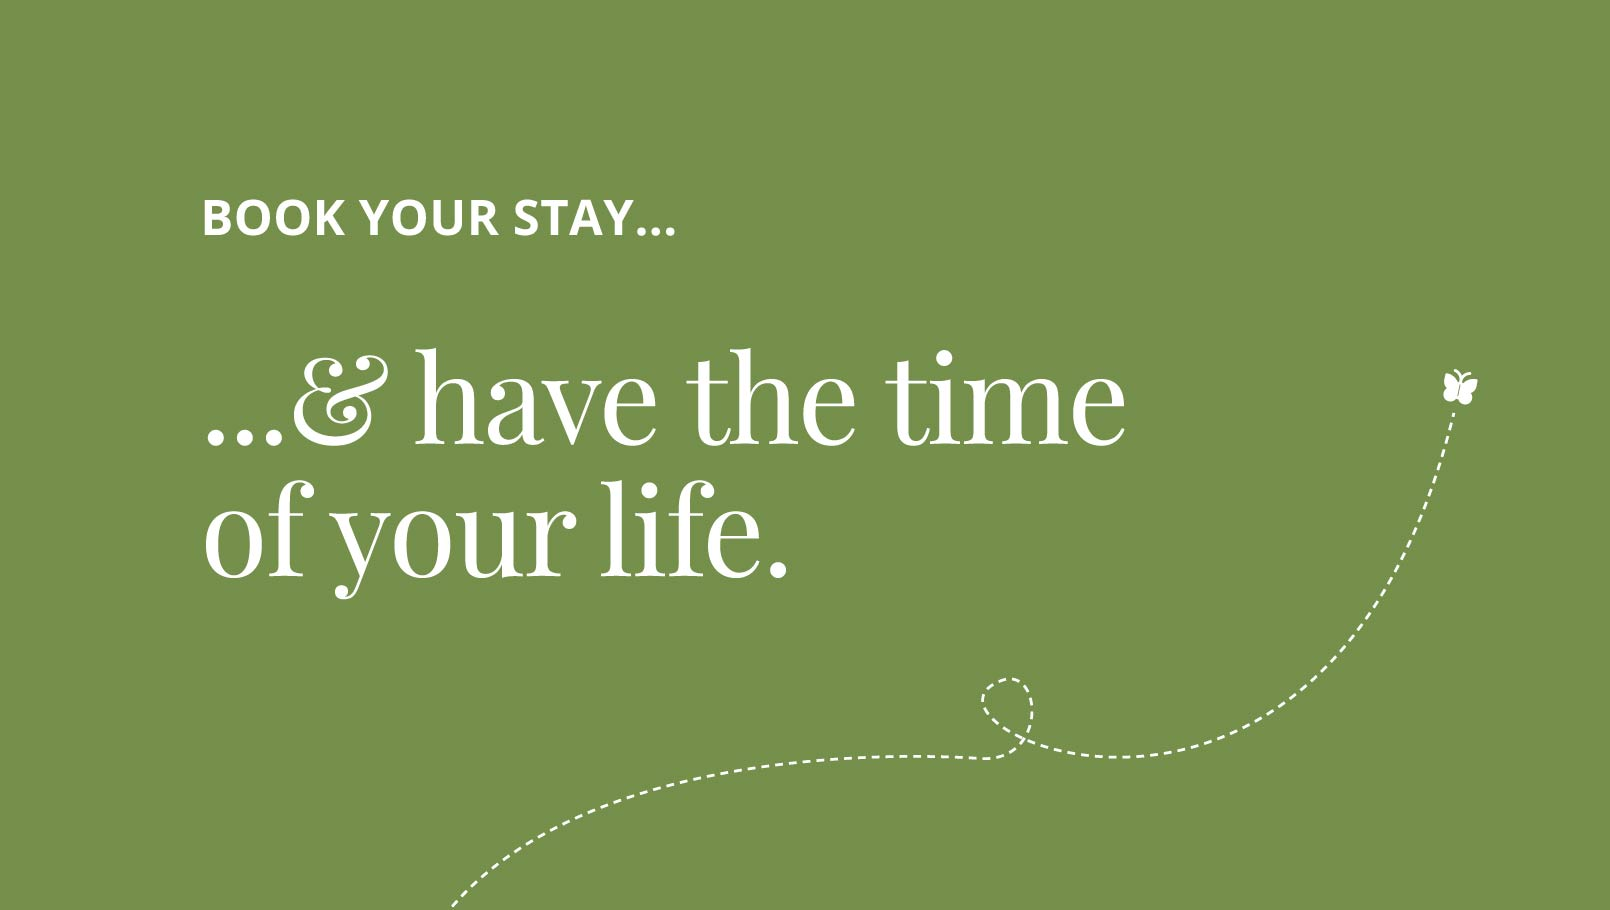 Book you stay and have the time of your life graphic design.